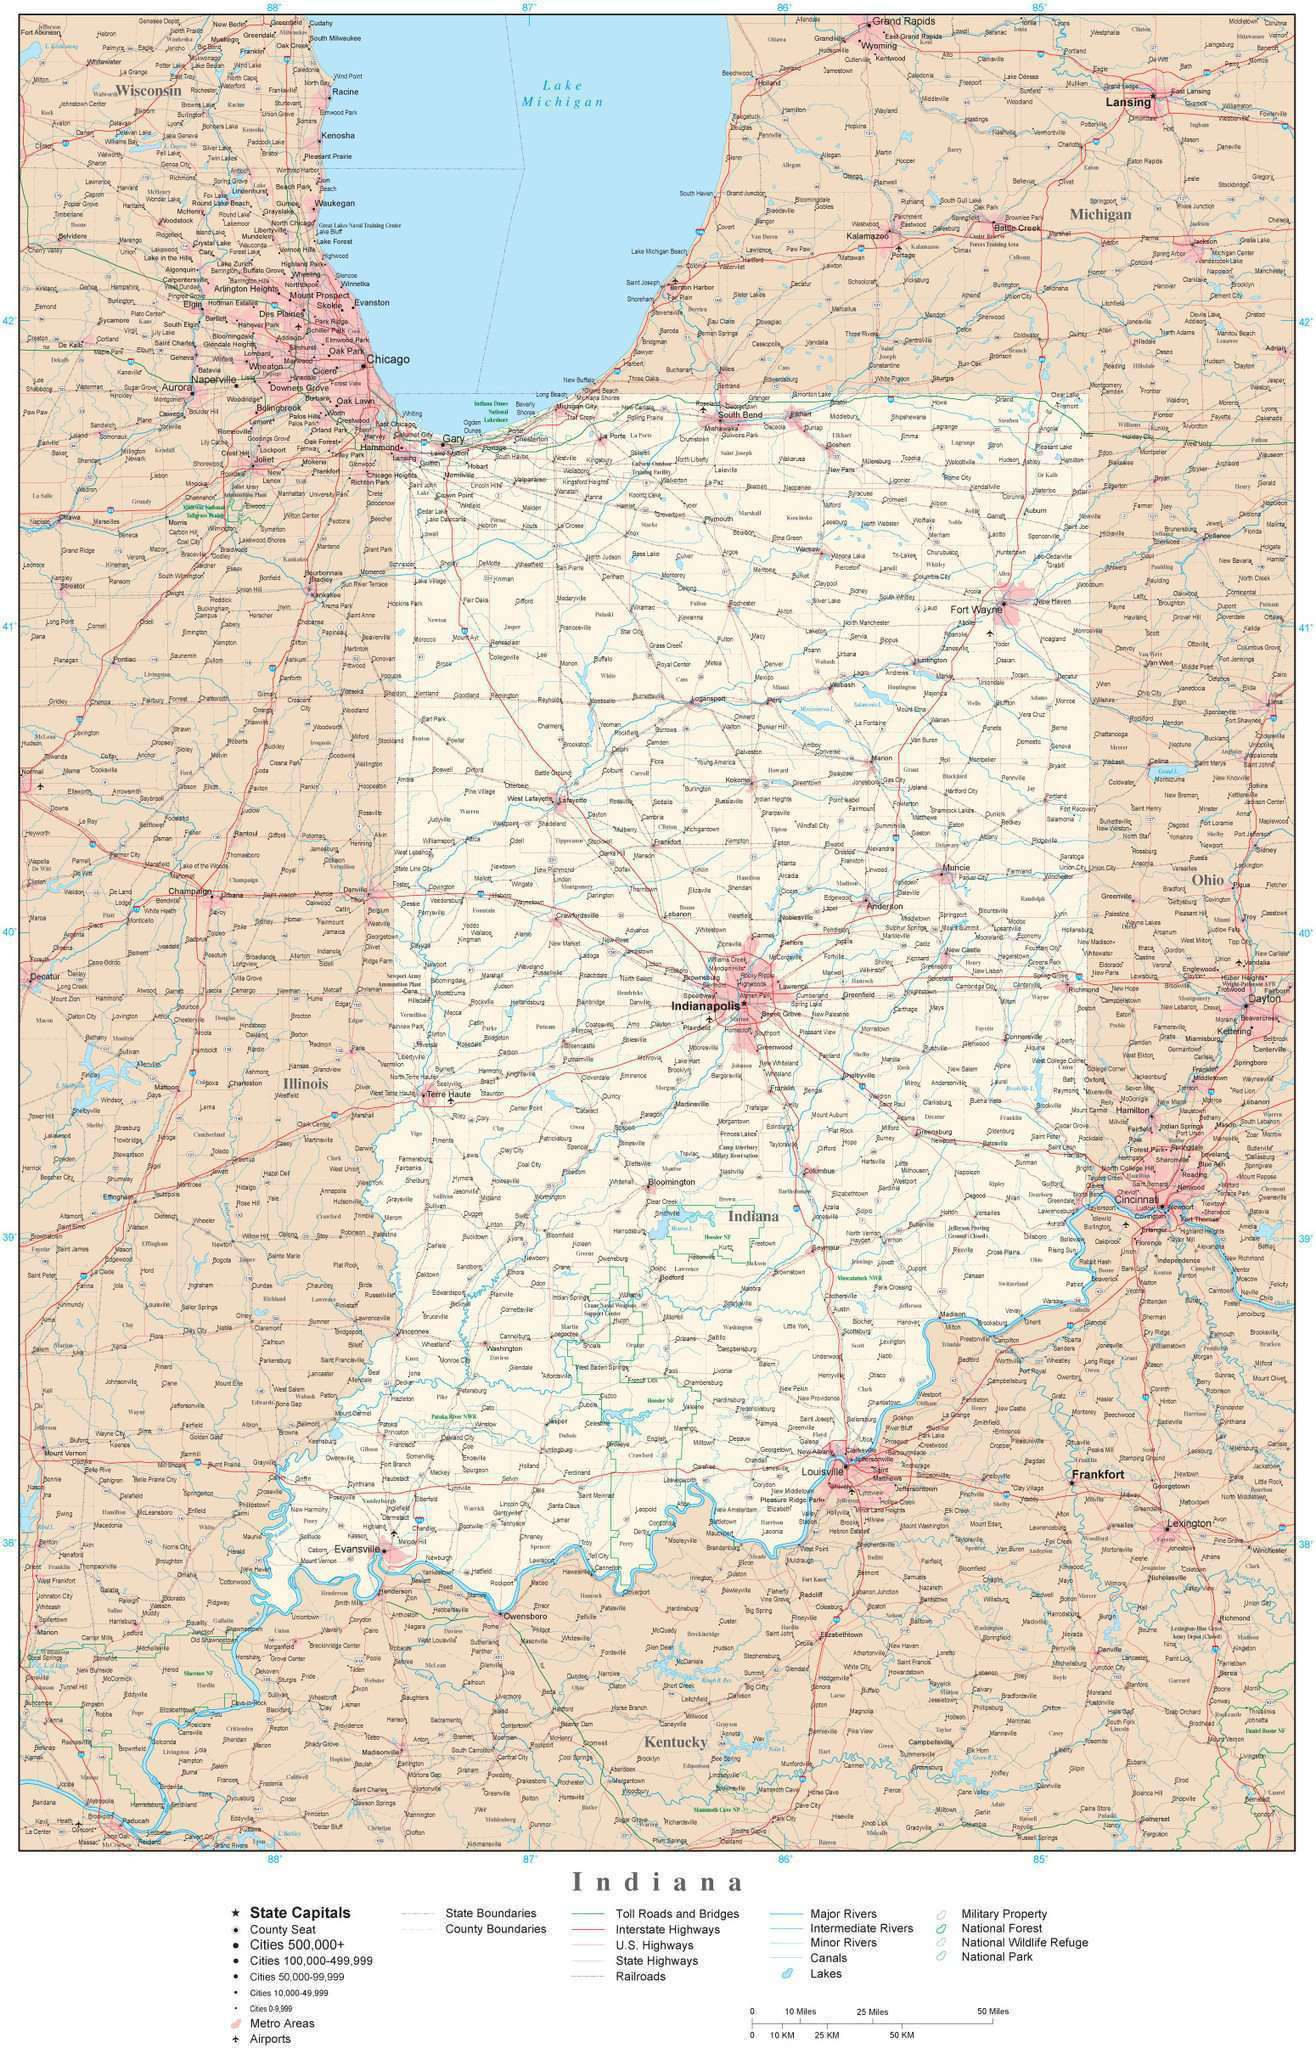 Indiana Map With County Lines Indiana Detailed Map in Adobe Illustrator vector format. Detailed